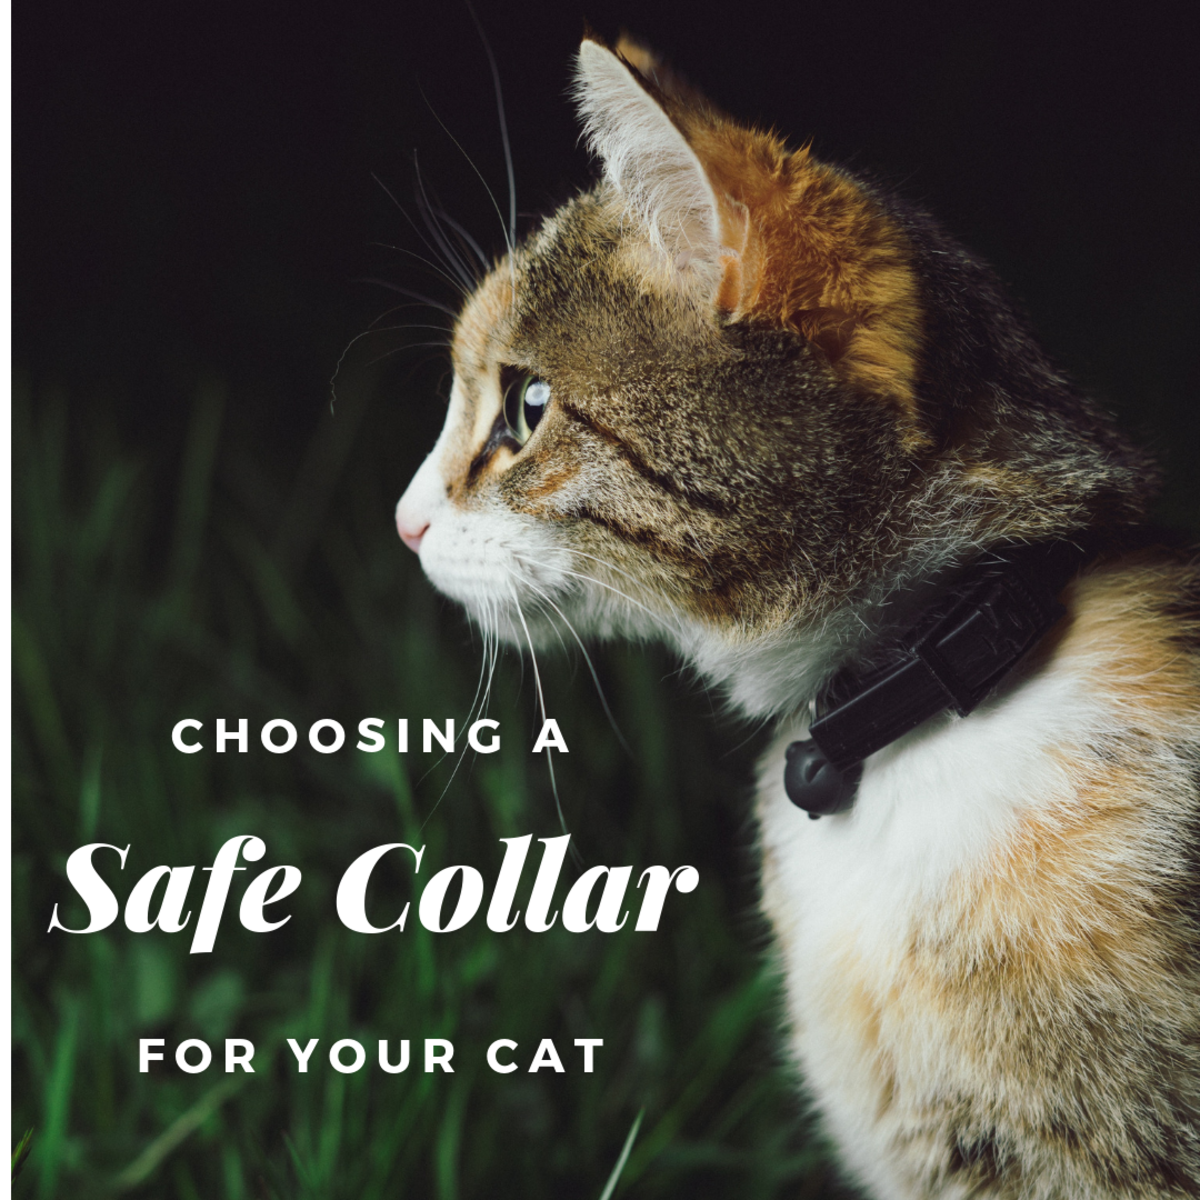 The Best Safe and Cute Cat Collar for Your Cat